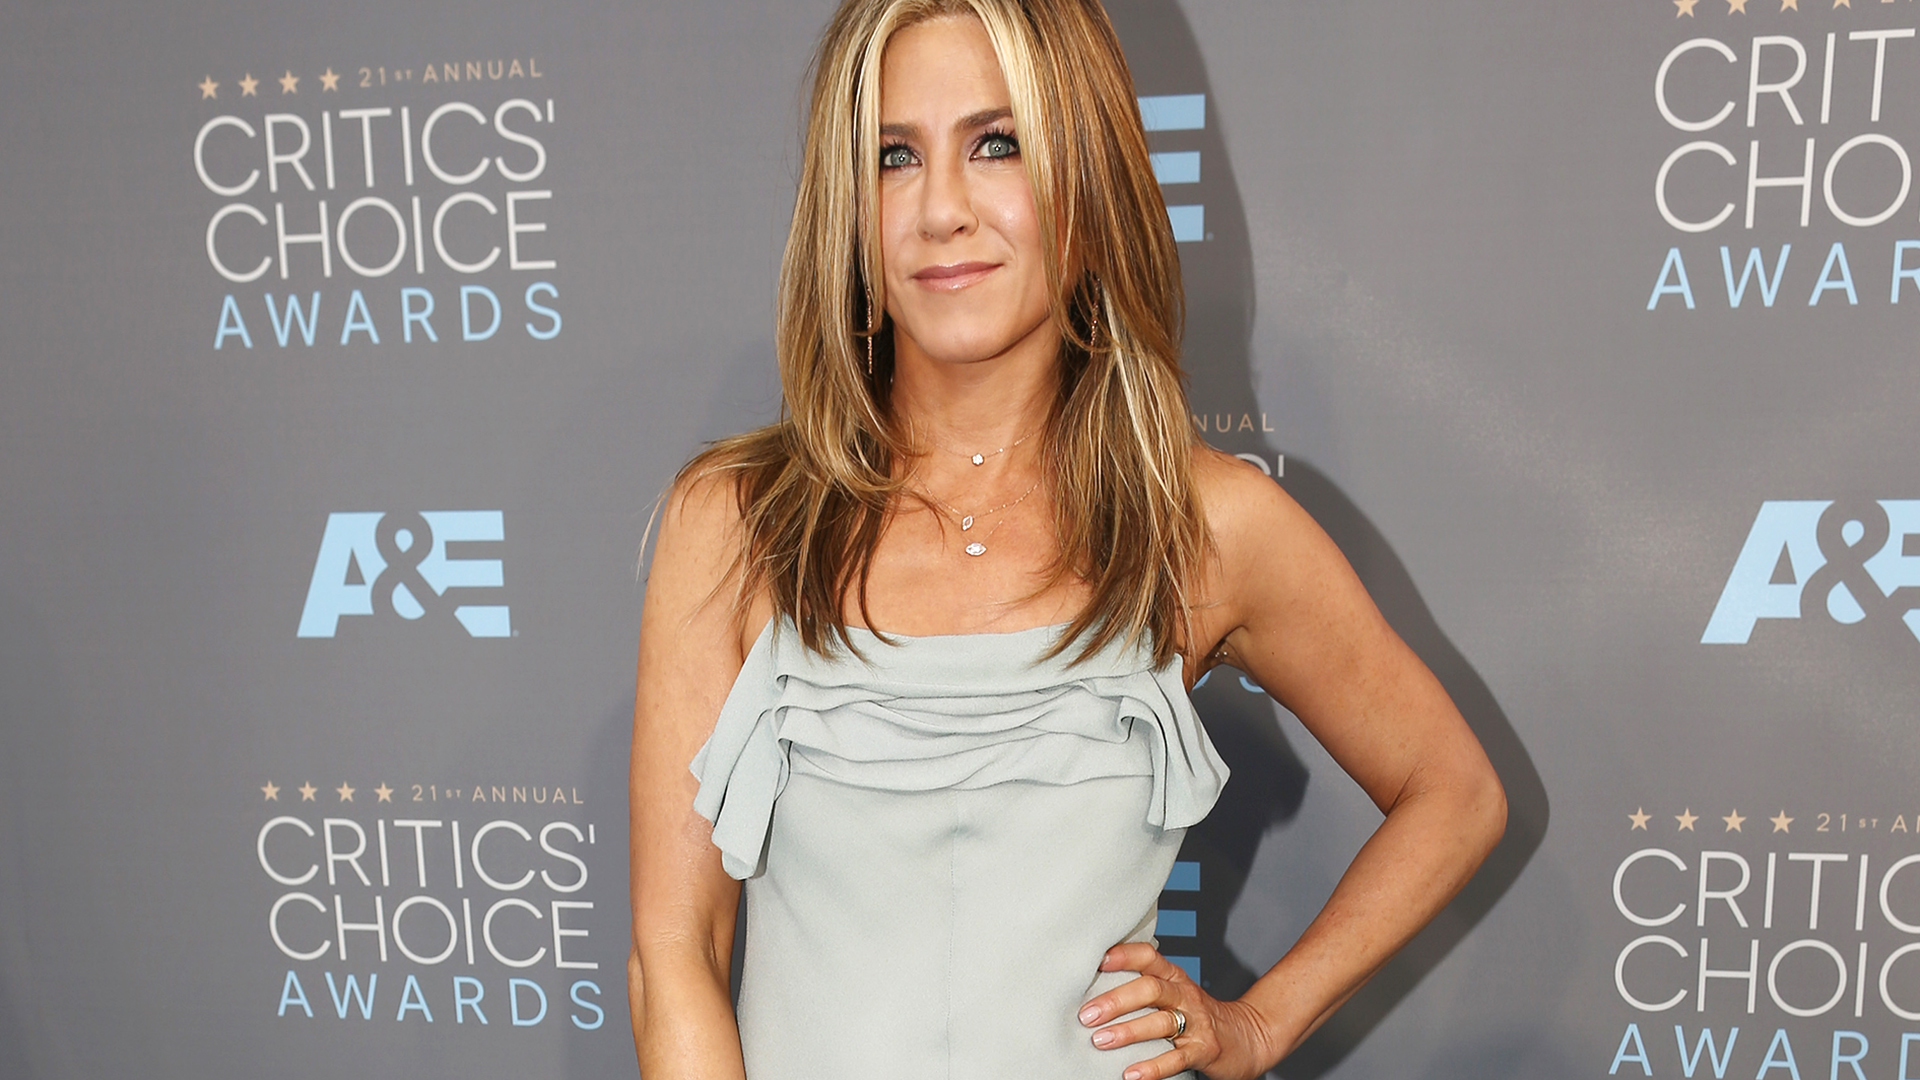 aniston shares daily workout routine and